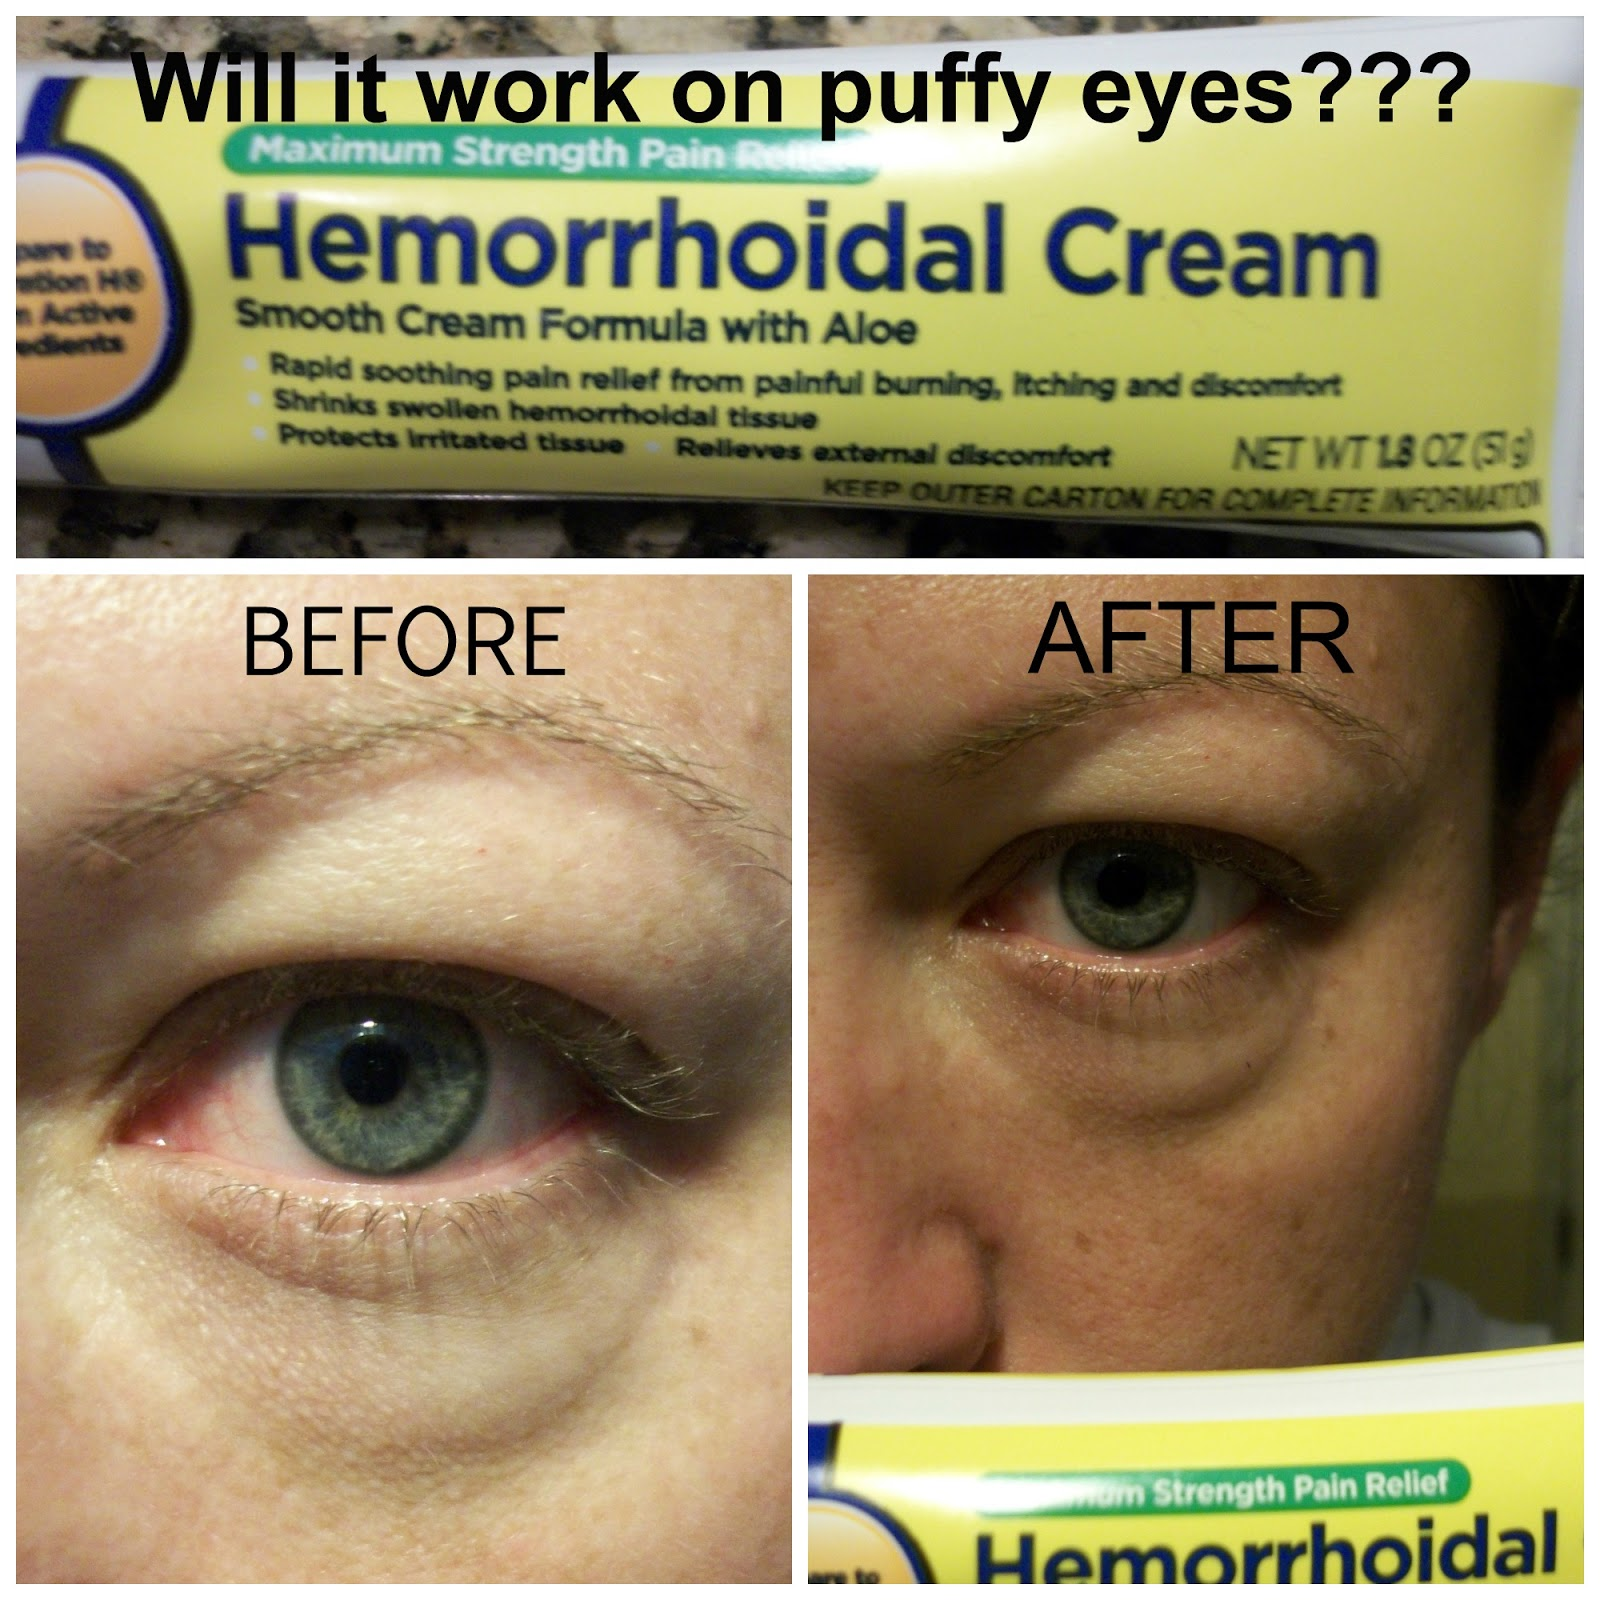 Hemorrhoid cream for eyes review